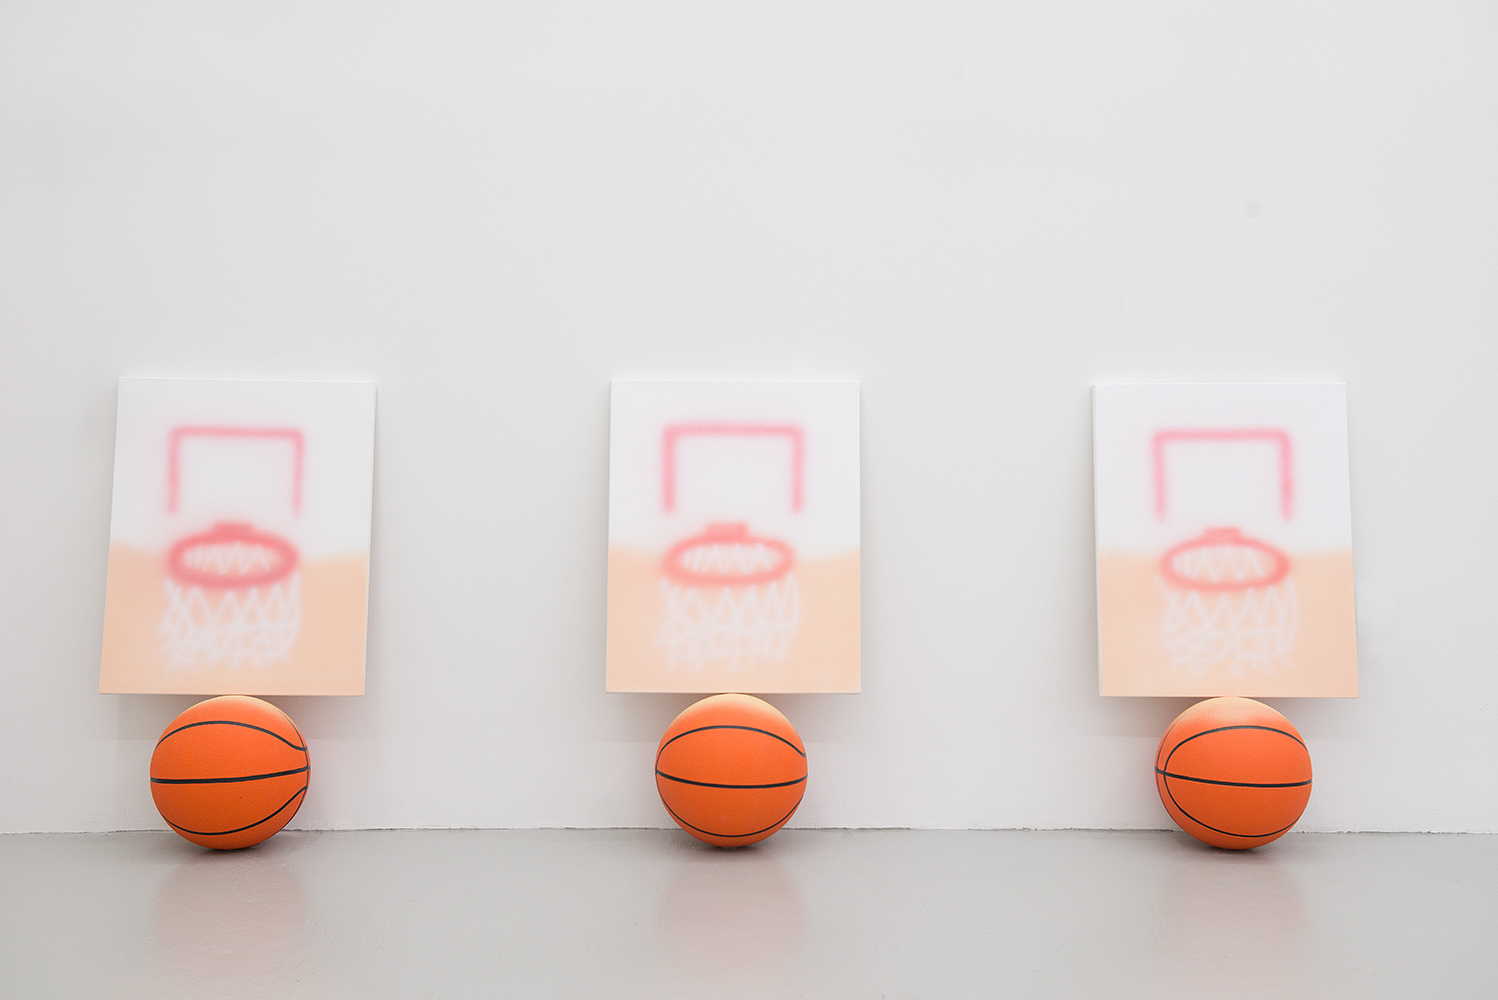 Goals On Balls, Installation view, 2015